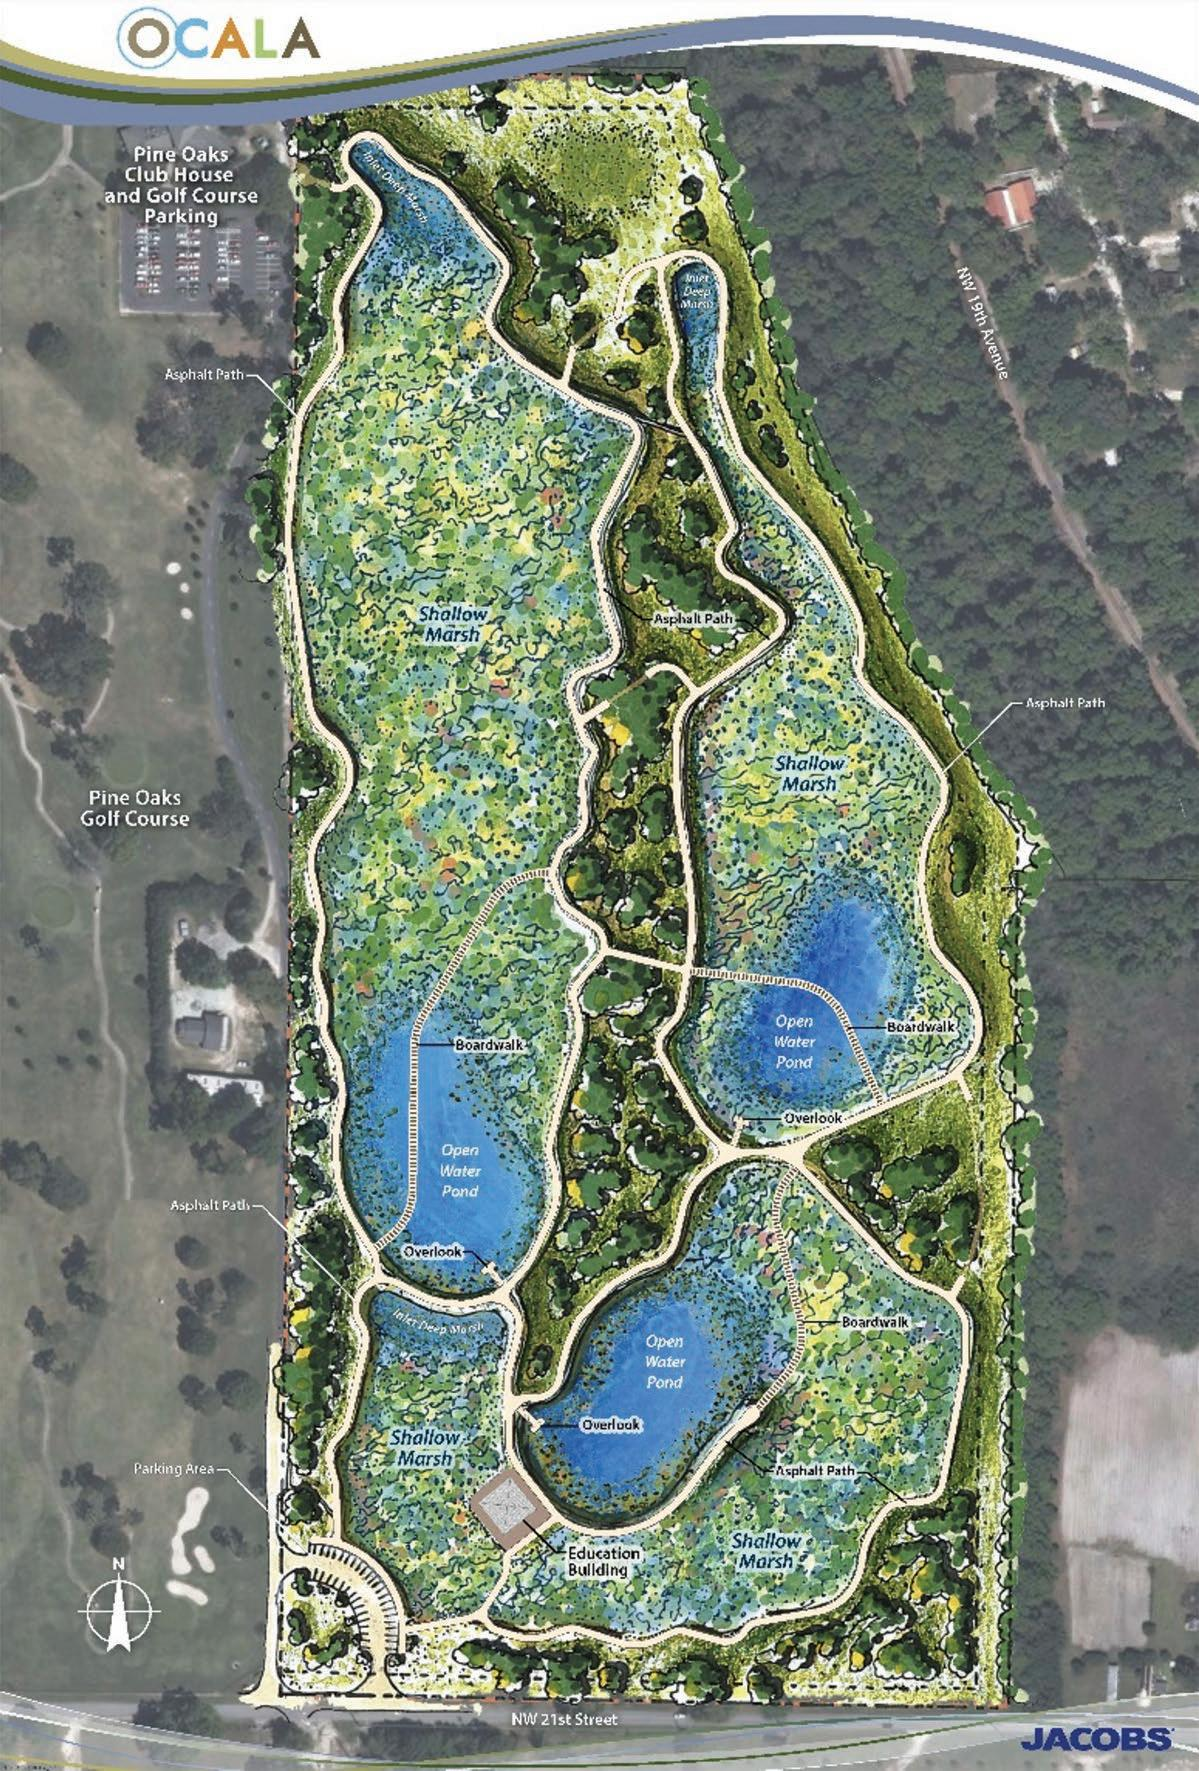 Page 16 of Reuse, Reduce, Recharge, Restore, and Recreate: Ocala Wetland Park—Allison